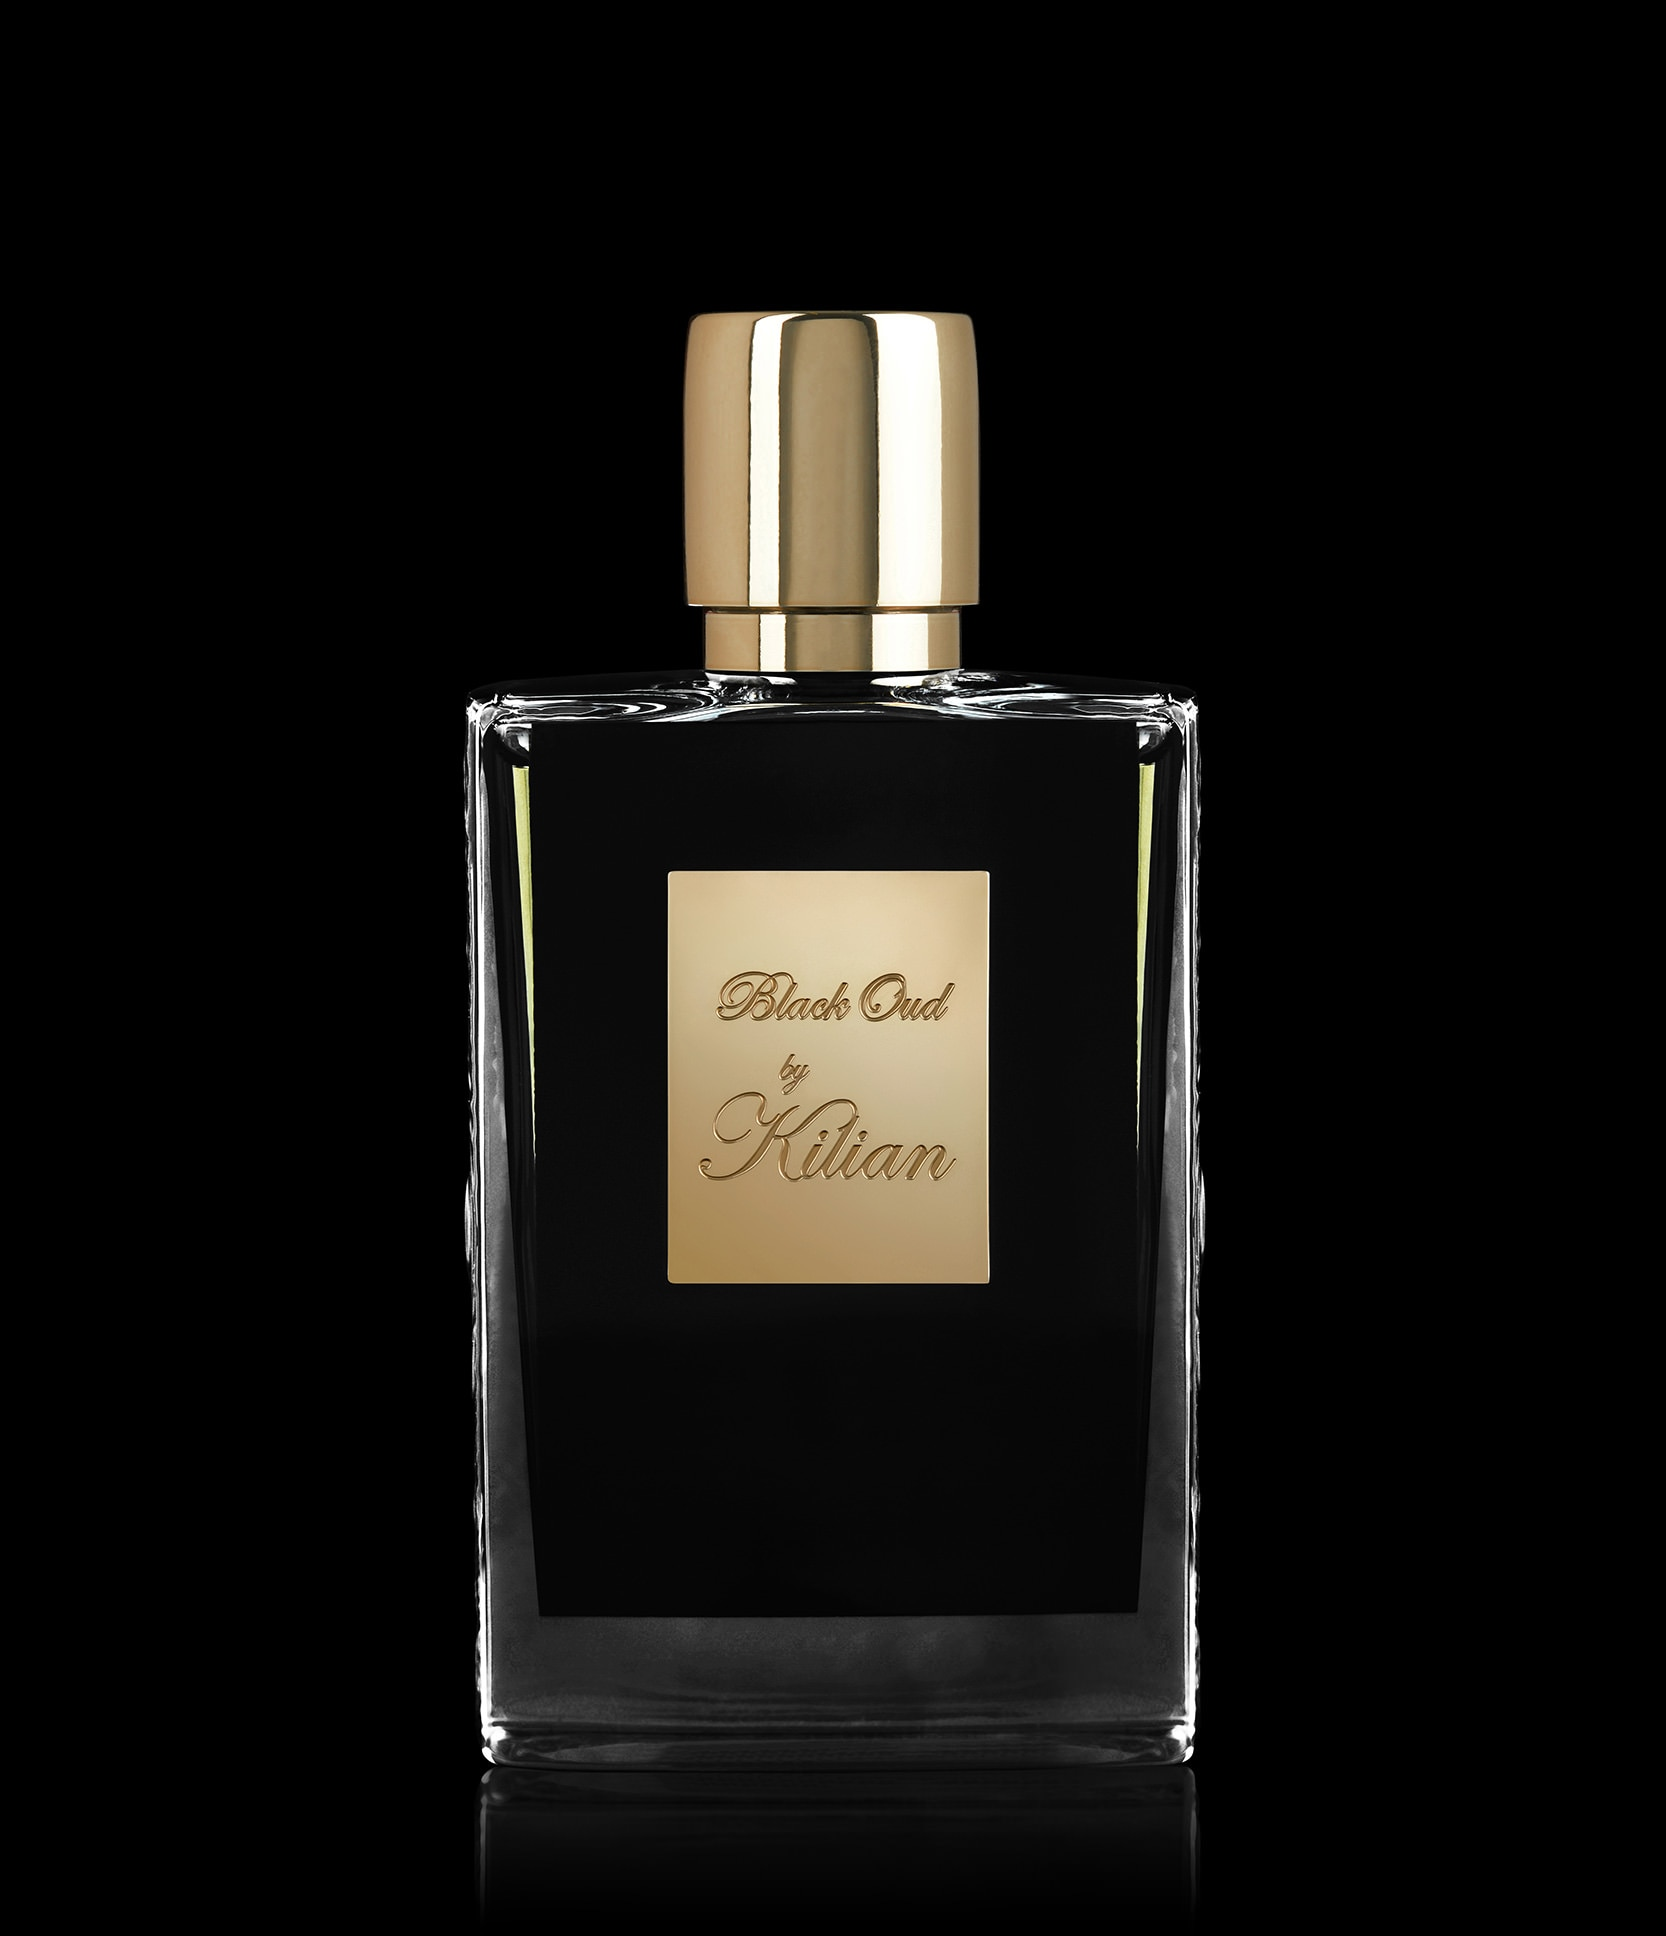 Black Oud Arabian Nights Kilian